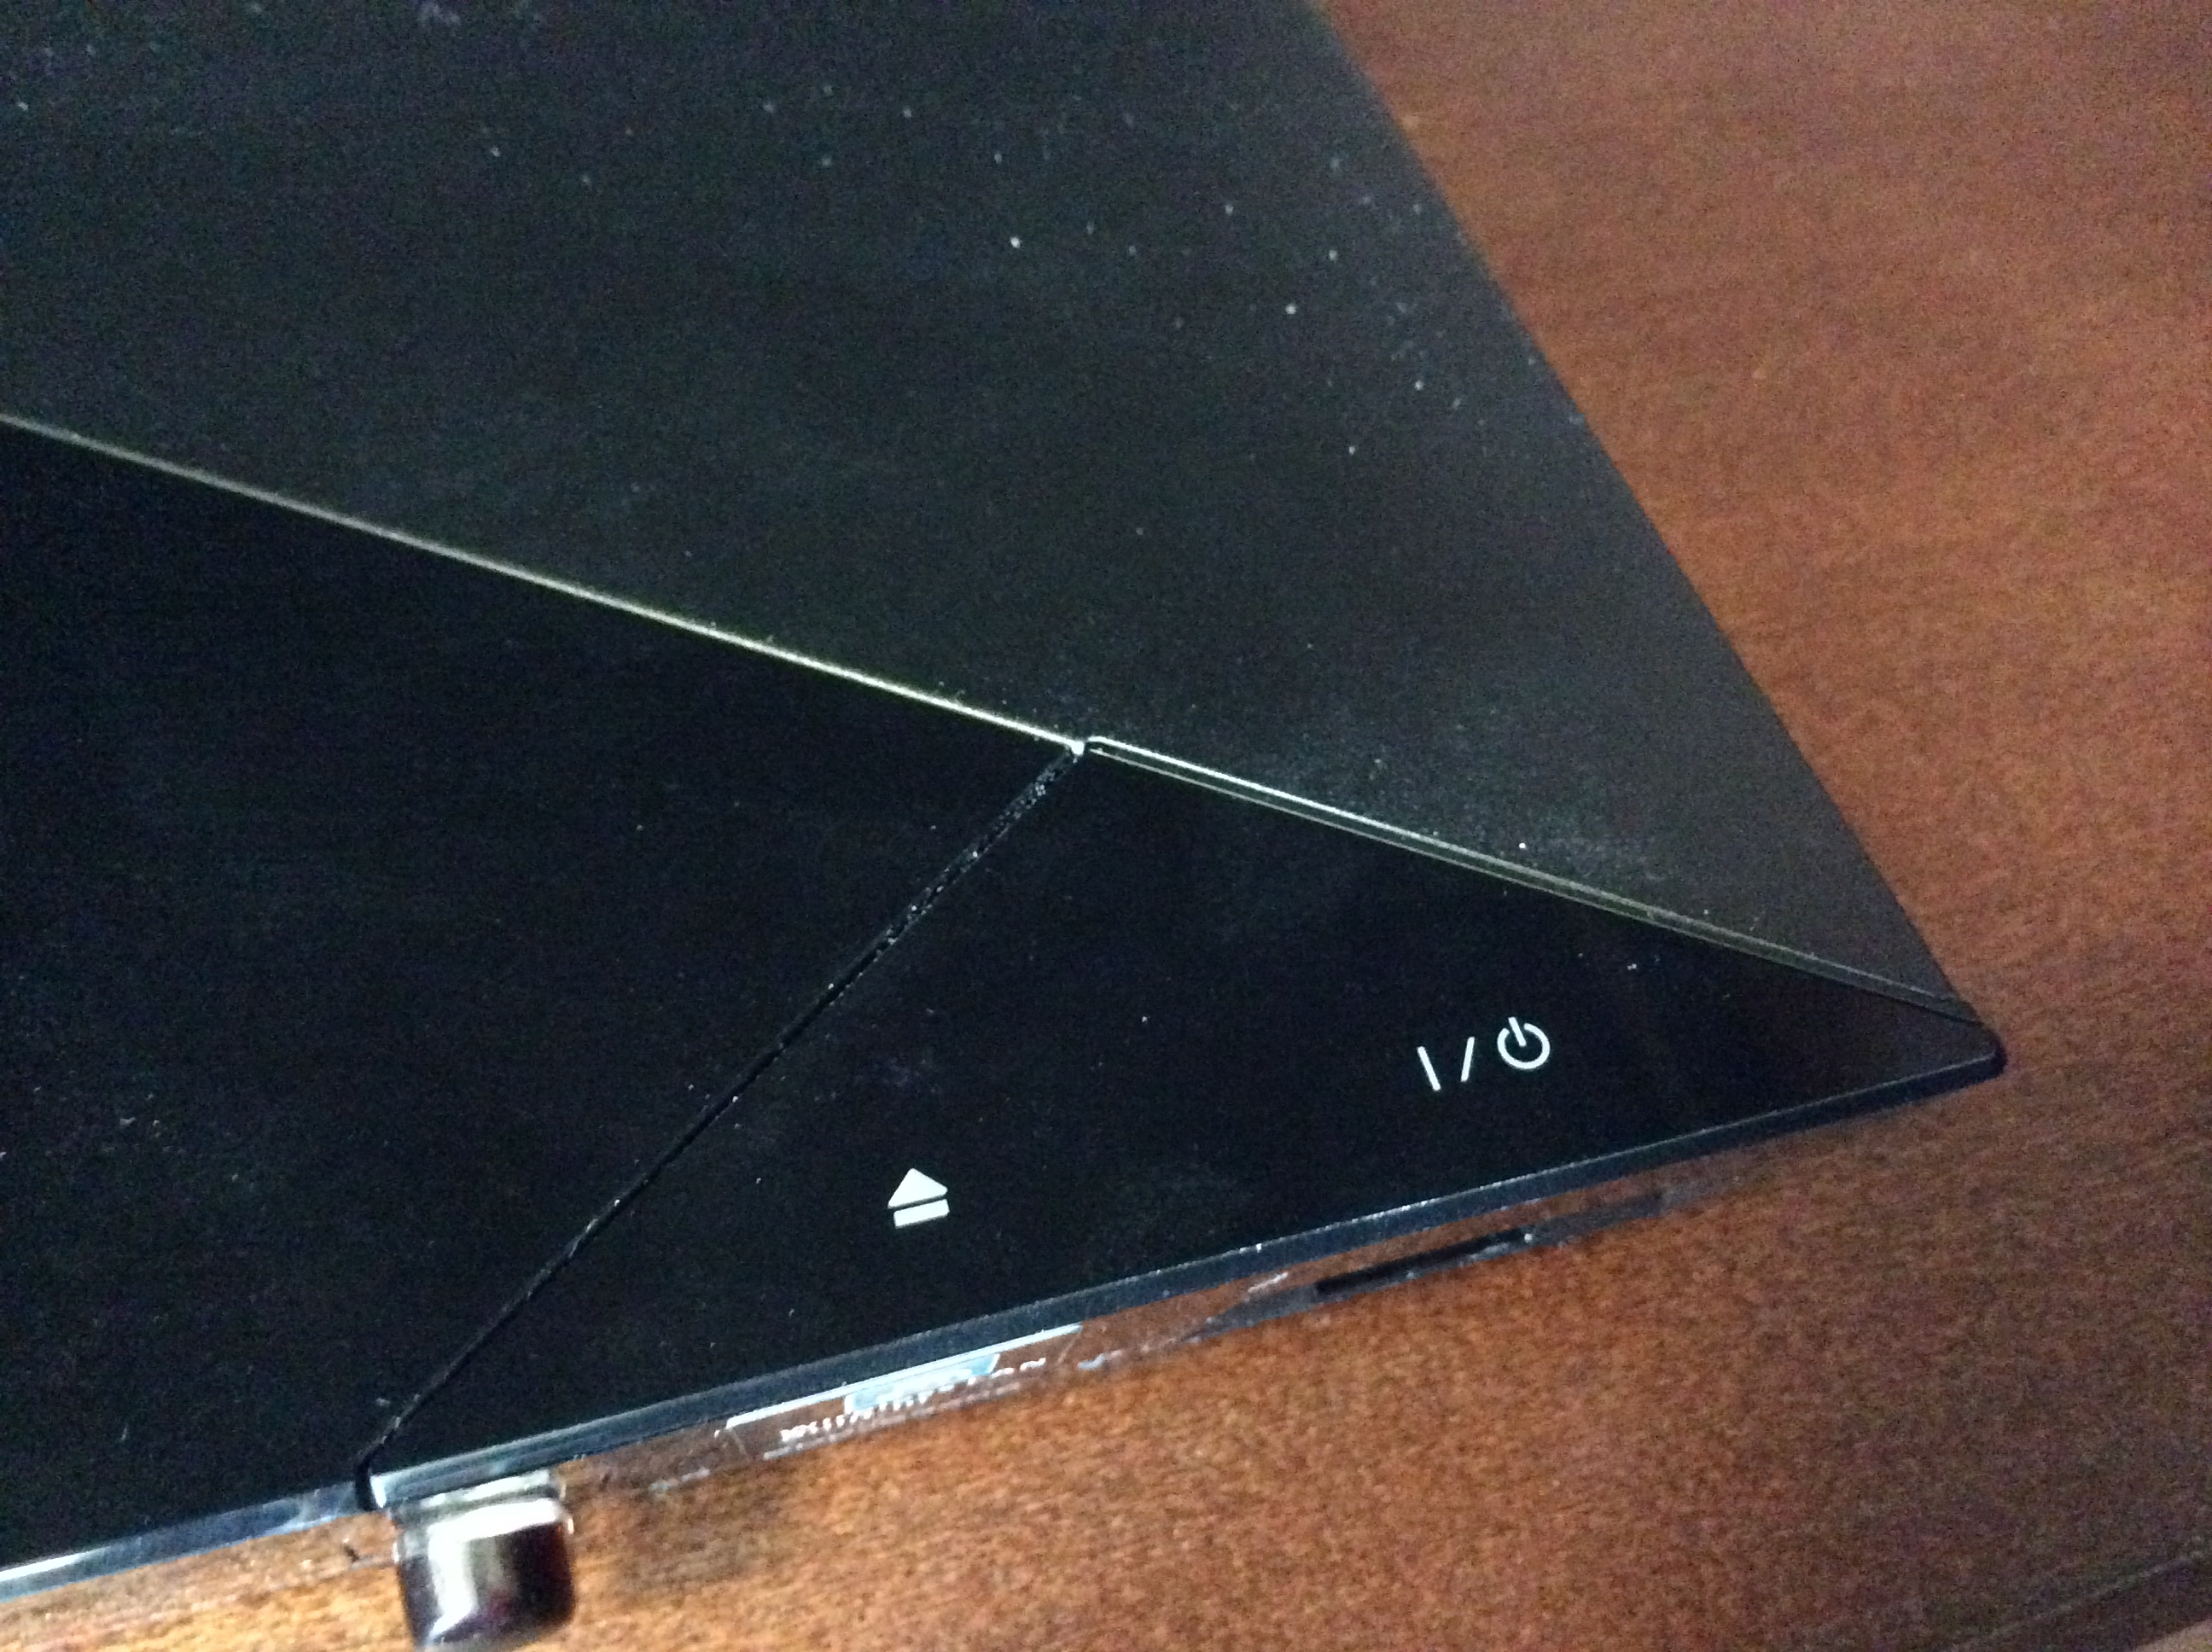 Photo of on, off, and eject option for the dvd player